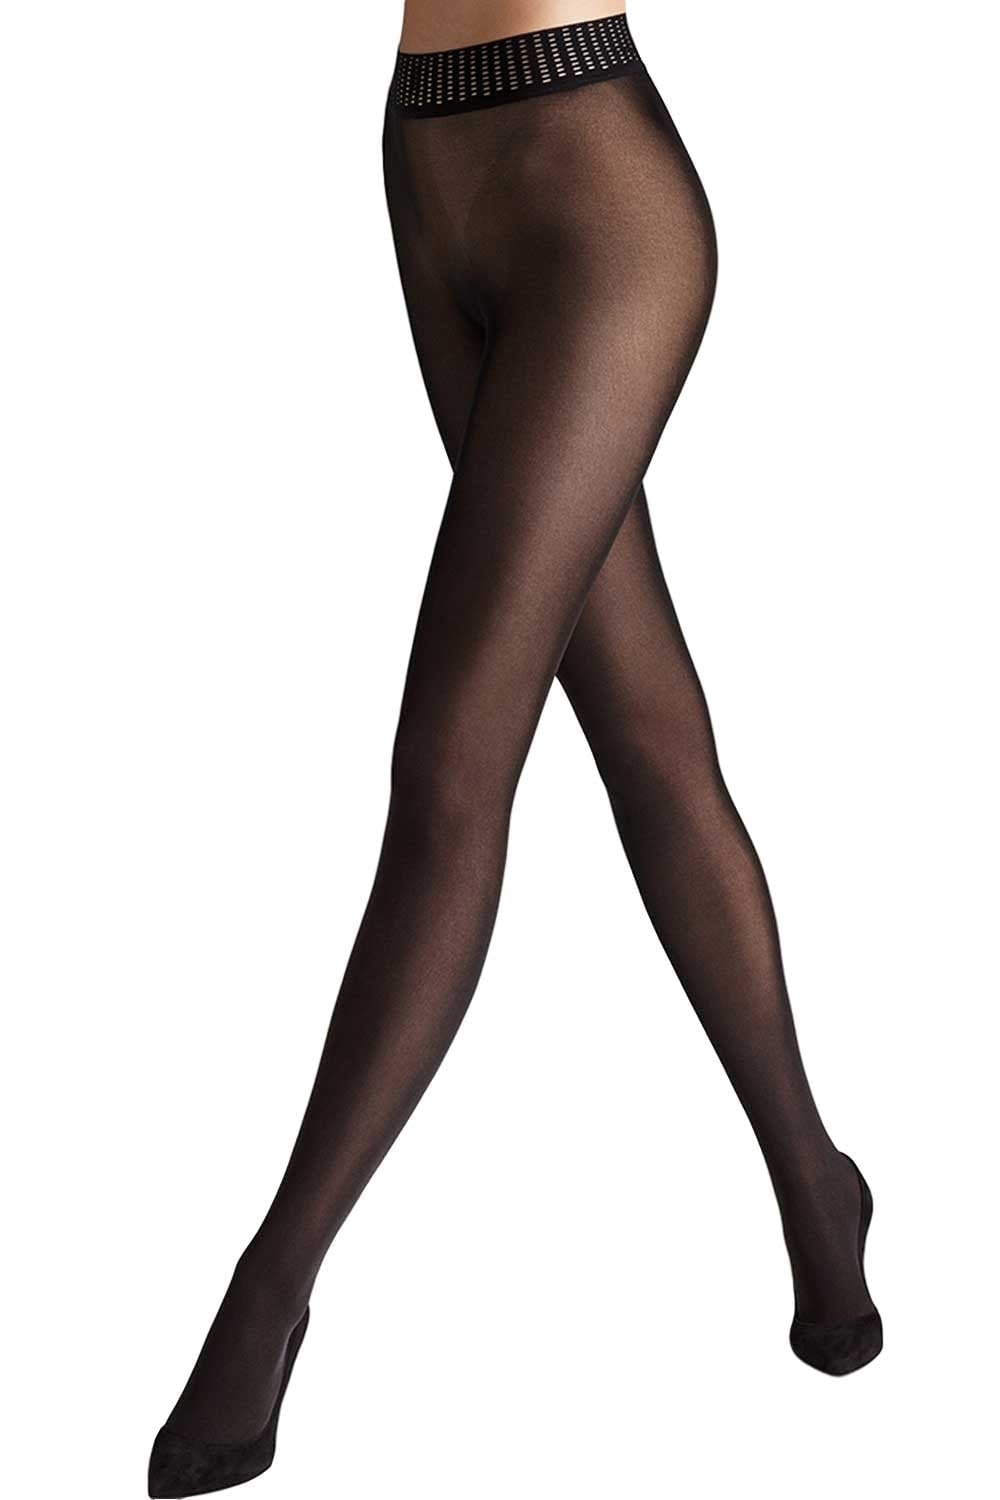 0bed188c6 Wolford Fatal 50 Seamless Tights